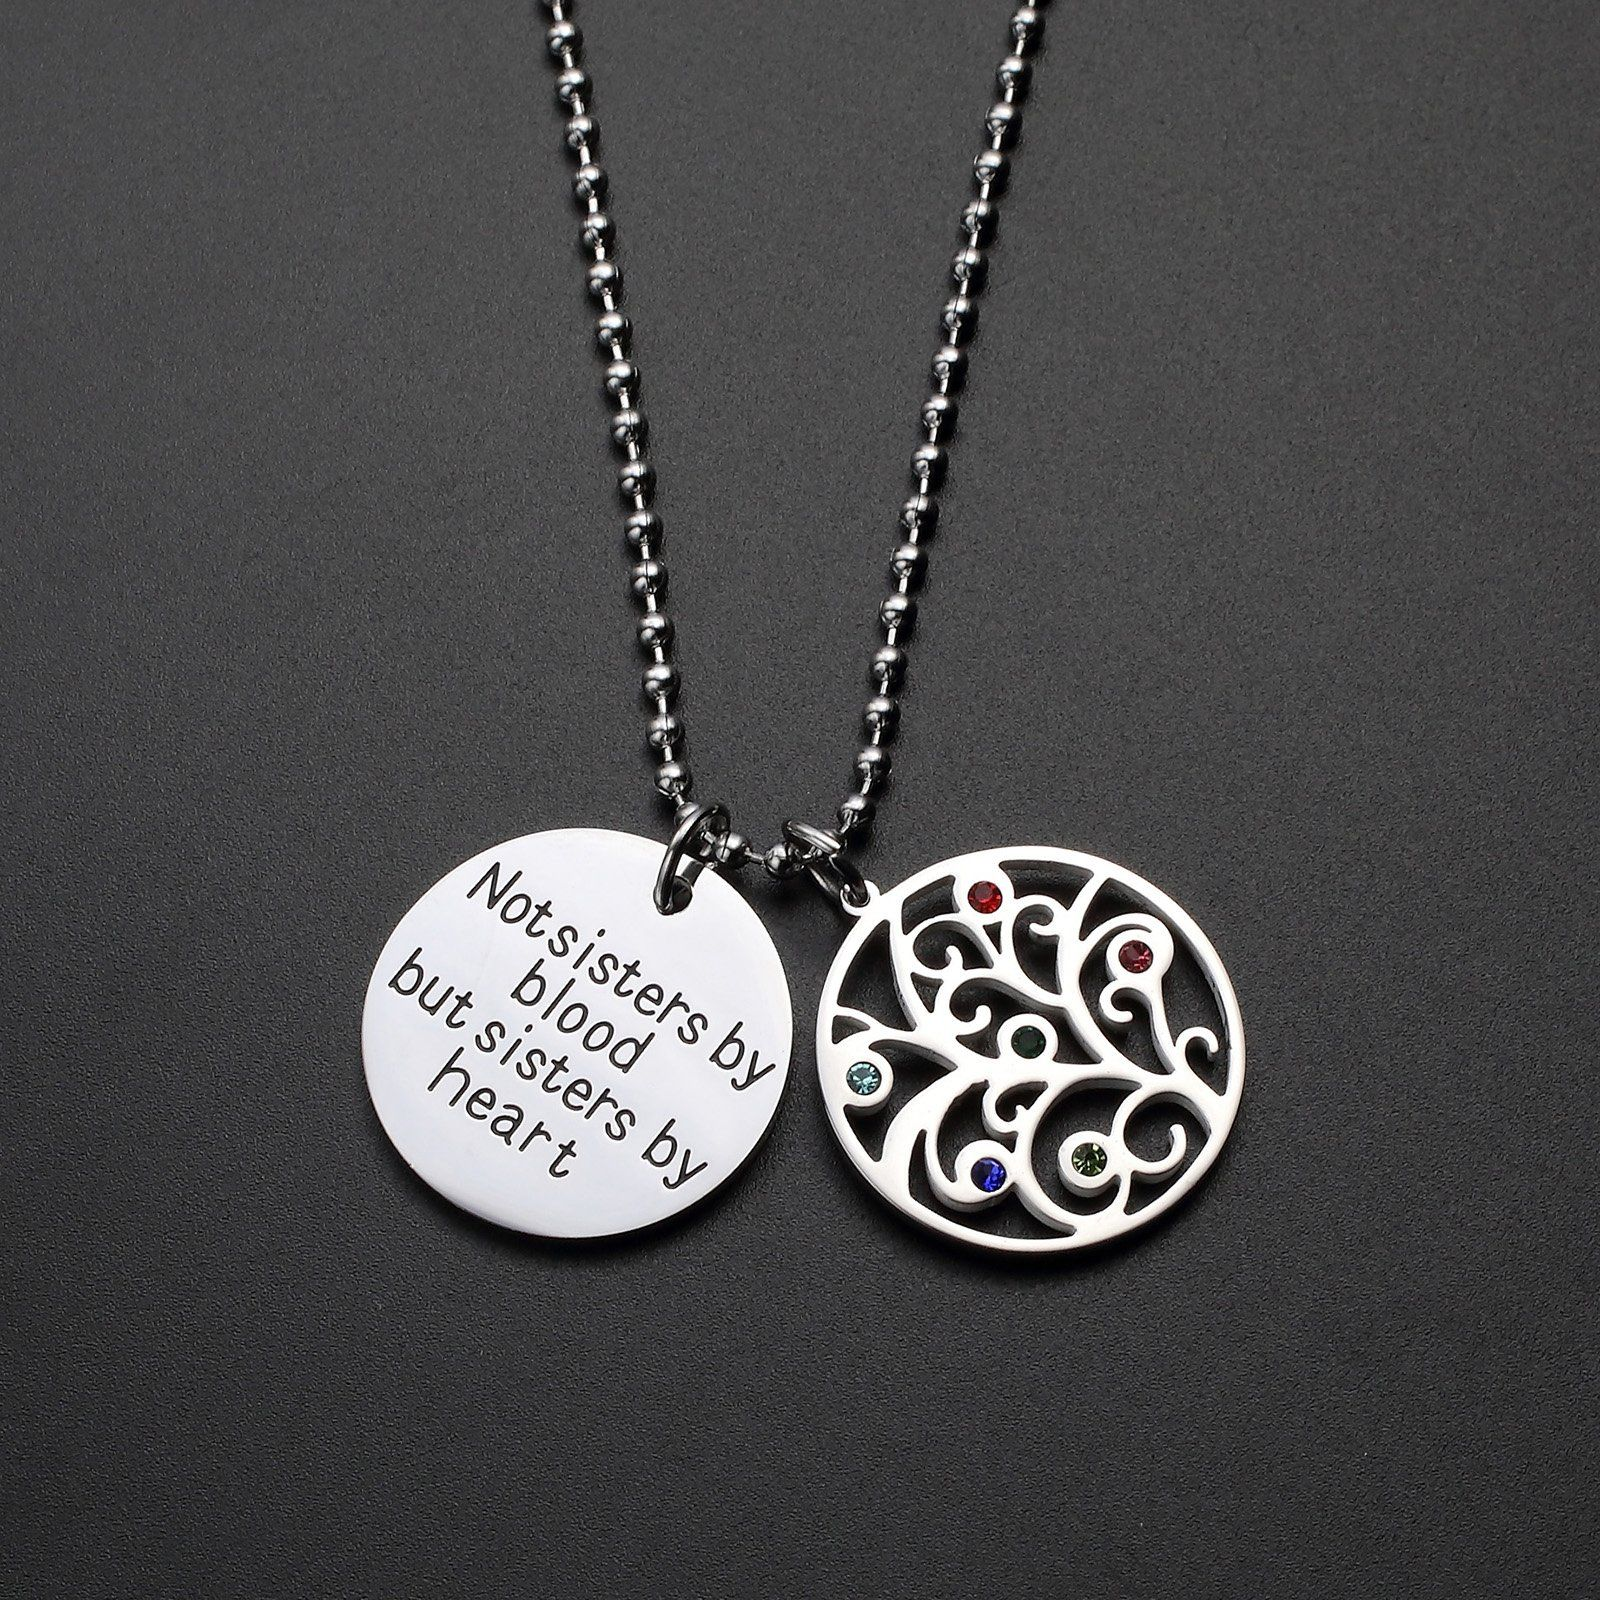 Fullrainbow Friendship Jewelry Sister Necklace Not Sisters By Blood